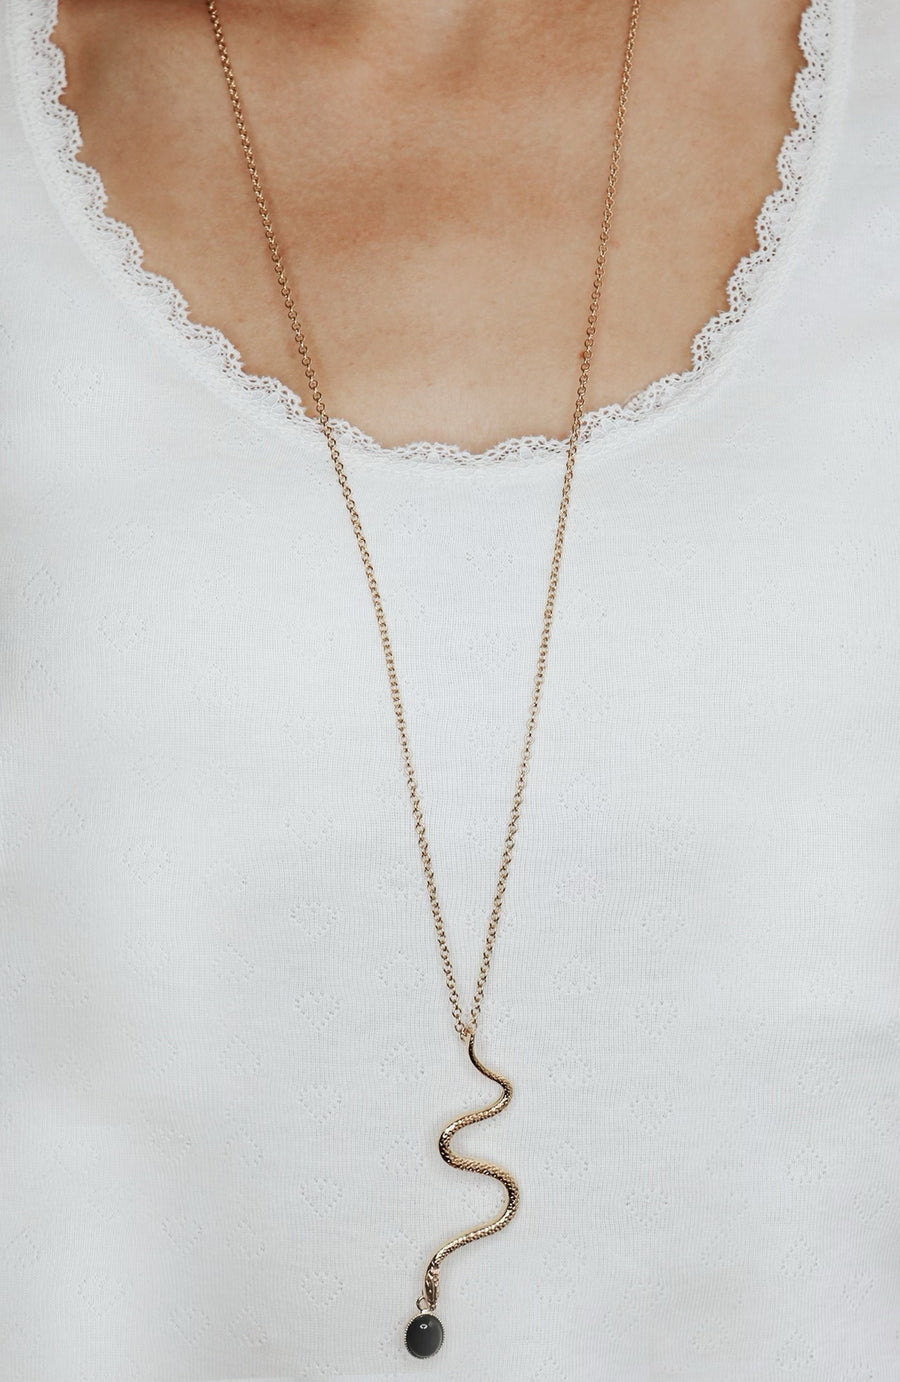 Enchanted long necklace P